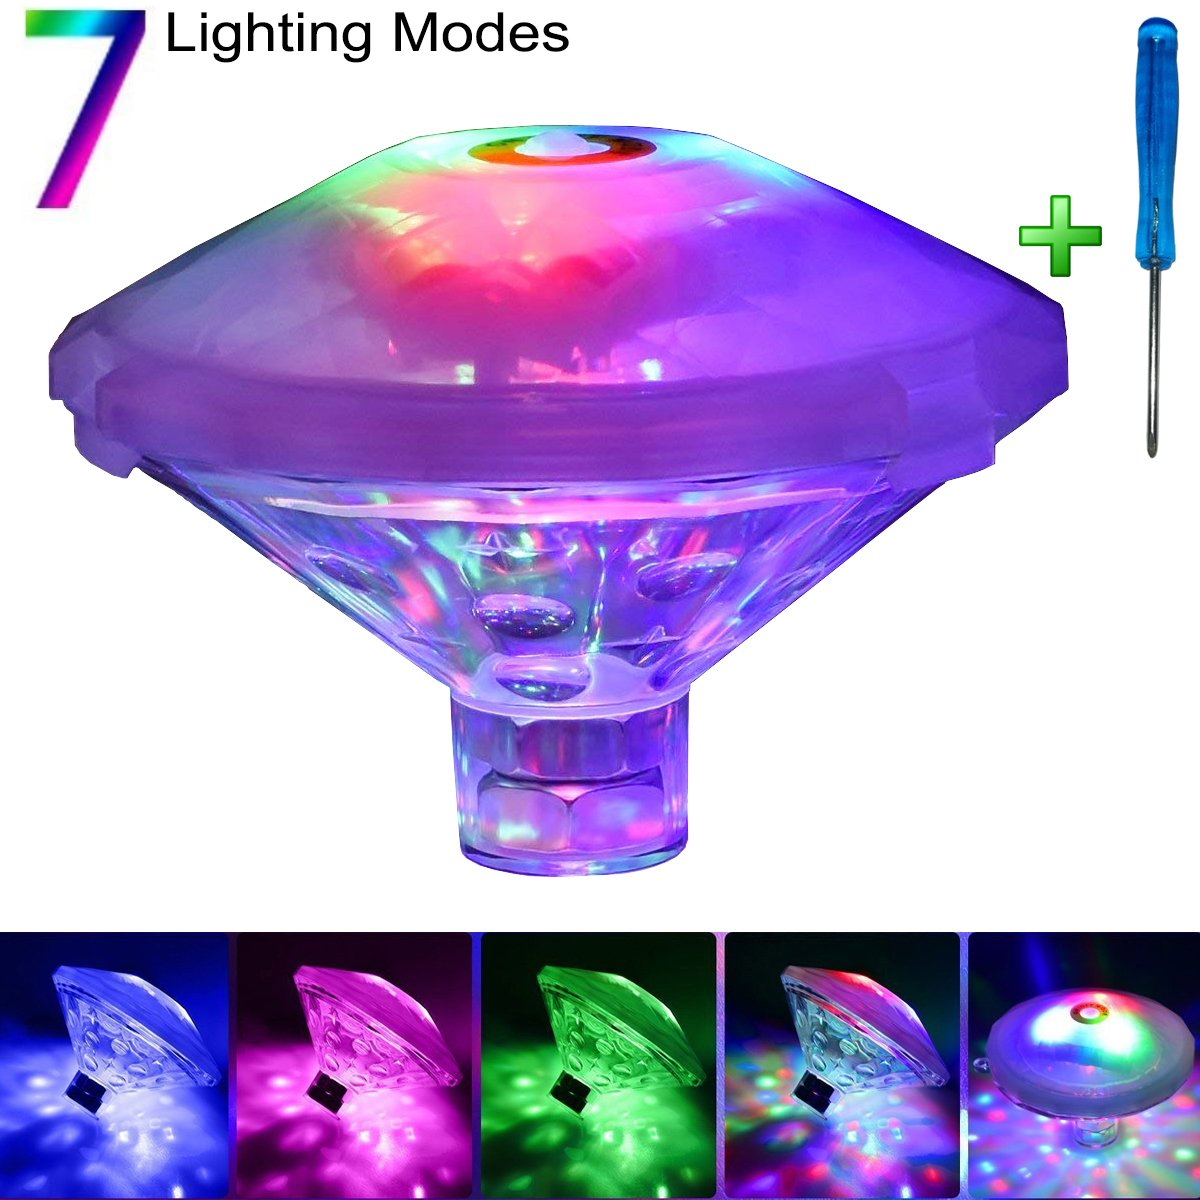 Antallcky Bath Light Bathtub Lights Upgrade Version,Waterproof Colorful LED Toys,Floating Lights Battery Operated for Bathtub Pool Bathroom Pond Spa Party Decorations,Christmas(7 Lighting Modes) by Antallcky